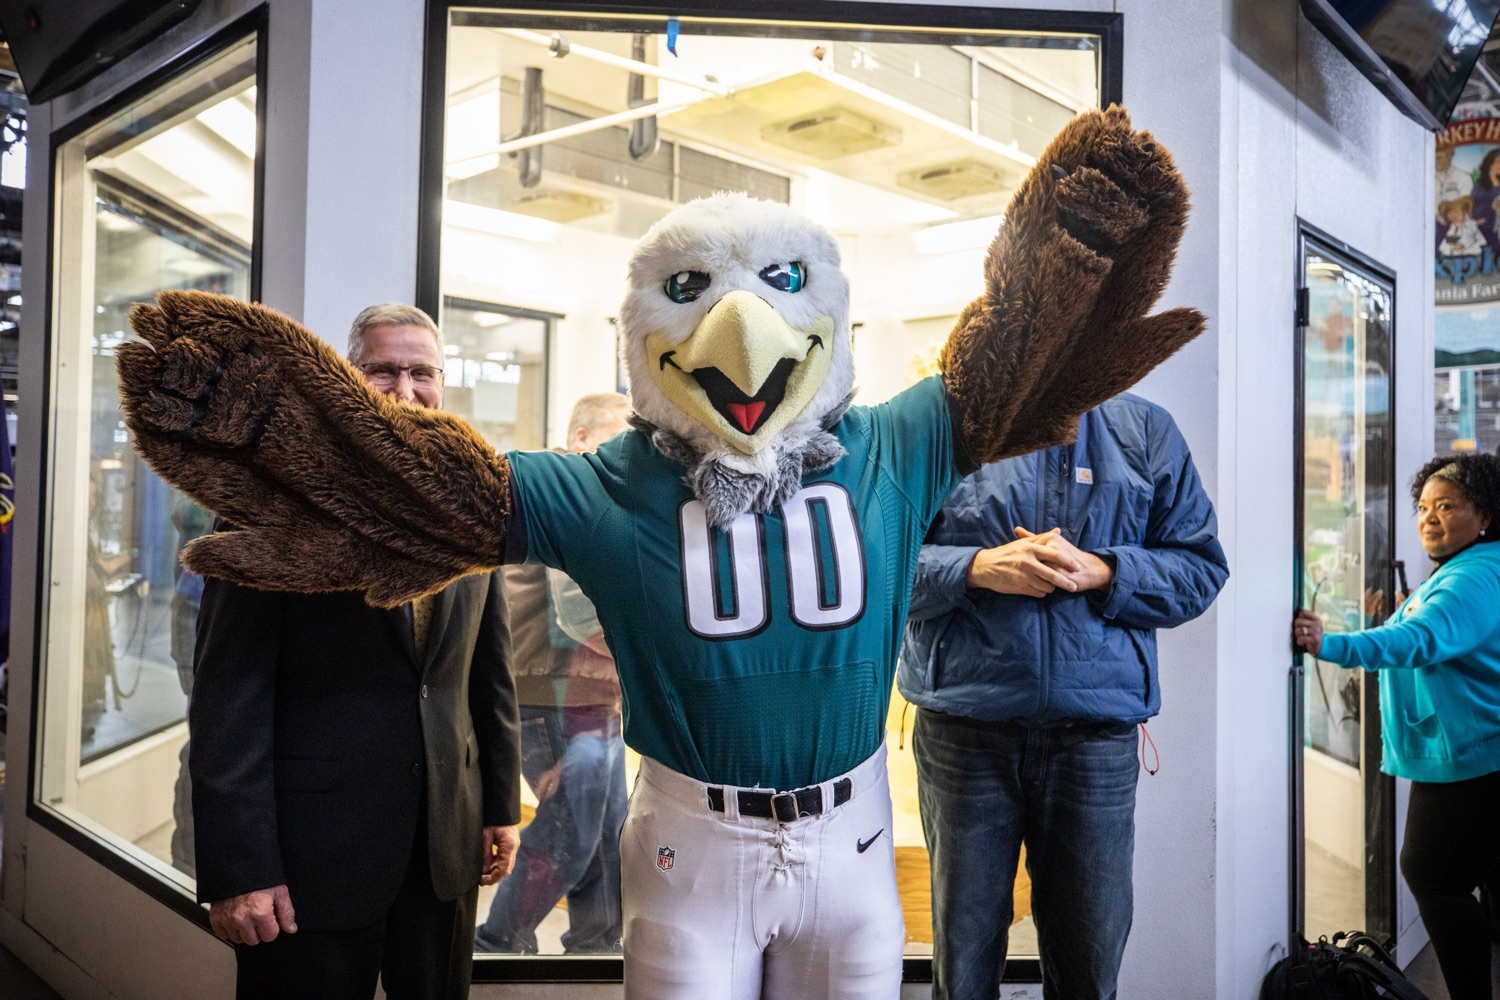 "<a href=""http://filesource.abacast.com/commonwealthofpa/photo/17646_agric_butter_sculpture_dz_021.jpg"" target=""_blank"">⇣ Download Photo<br></a>Philadelphia Eagles Swoop, Lt. Governor John Fetterman,  and Secretary of Agriculture Russell Redding at the Pennsylvania Farm Show butter sculpture.  Lt. Governor John Fetterman and Secretary of Agriculture Russell Redding today unveiled the 2020 Pennsylvania Farm Show butter sculpture, carved from a half-ton of butter depicting three of Pennsylvanias beloved professional sports mascots: Philadelphia Flyers Gritty, Philadelphia Eagles Swoop, and Pittsburgh Steelers Steely McBeam celebrating with a spread of Pennsylvania dairy products. The sculpture, a long-time Farm Show staple, encourages Pennsylvanians to be a fan of Pennsylvania dairy and give a cheer to the more than 6,200 dairy farmers in the commonwealth.  Harrisburg, PA  January 2, 2020"